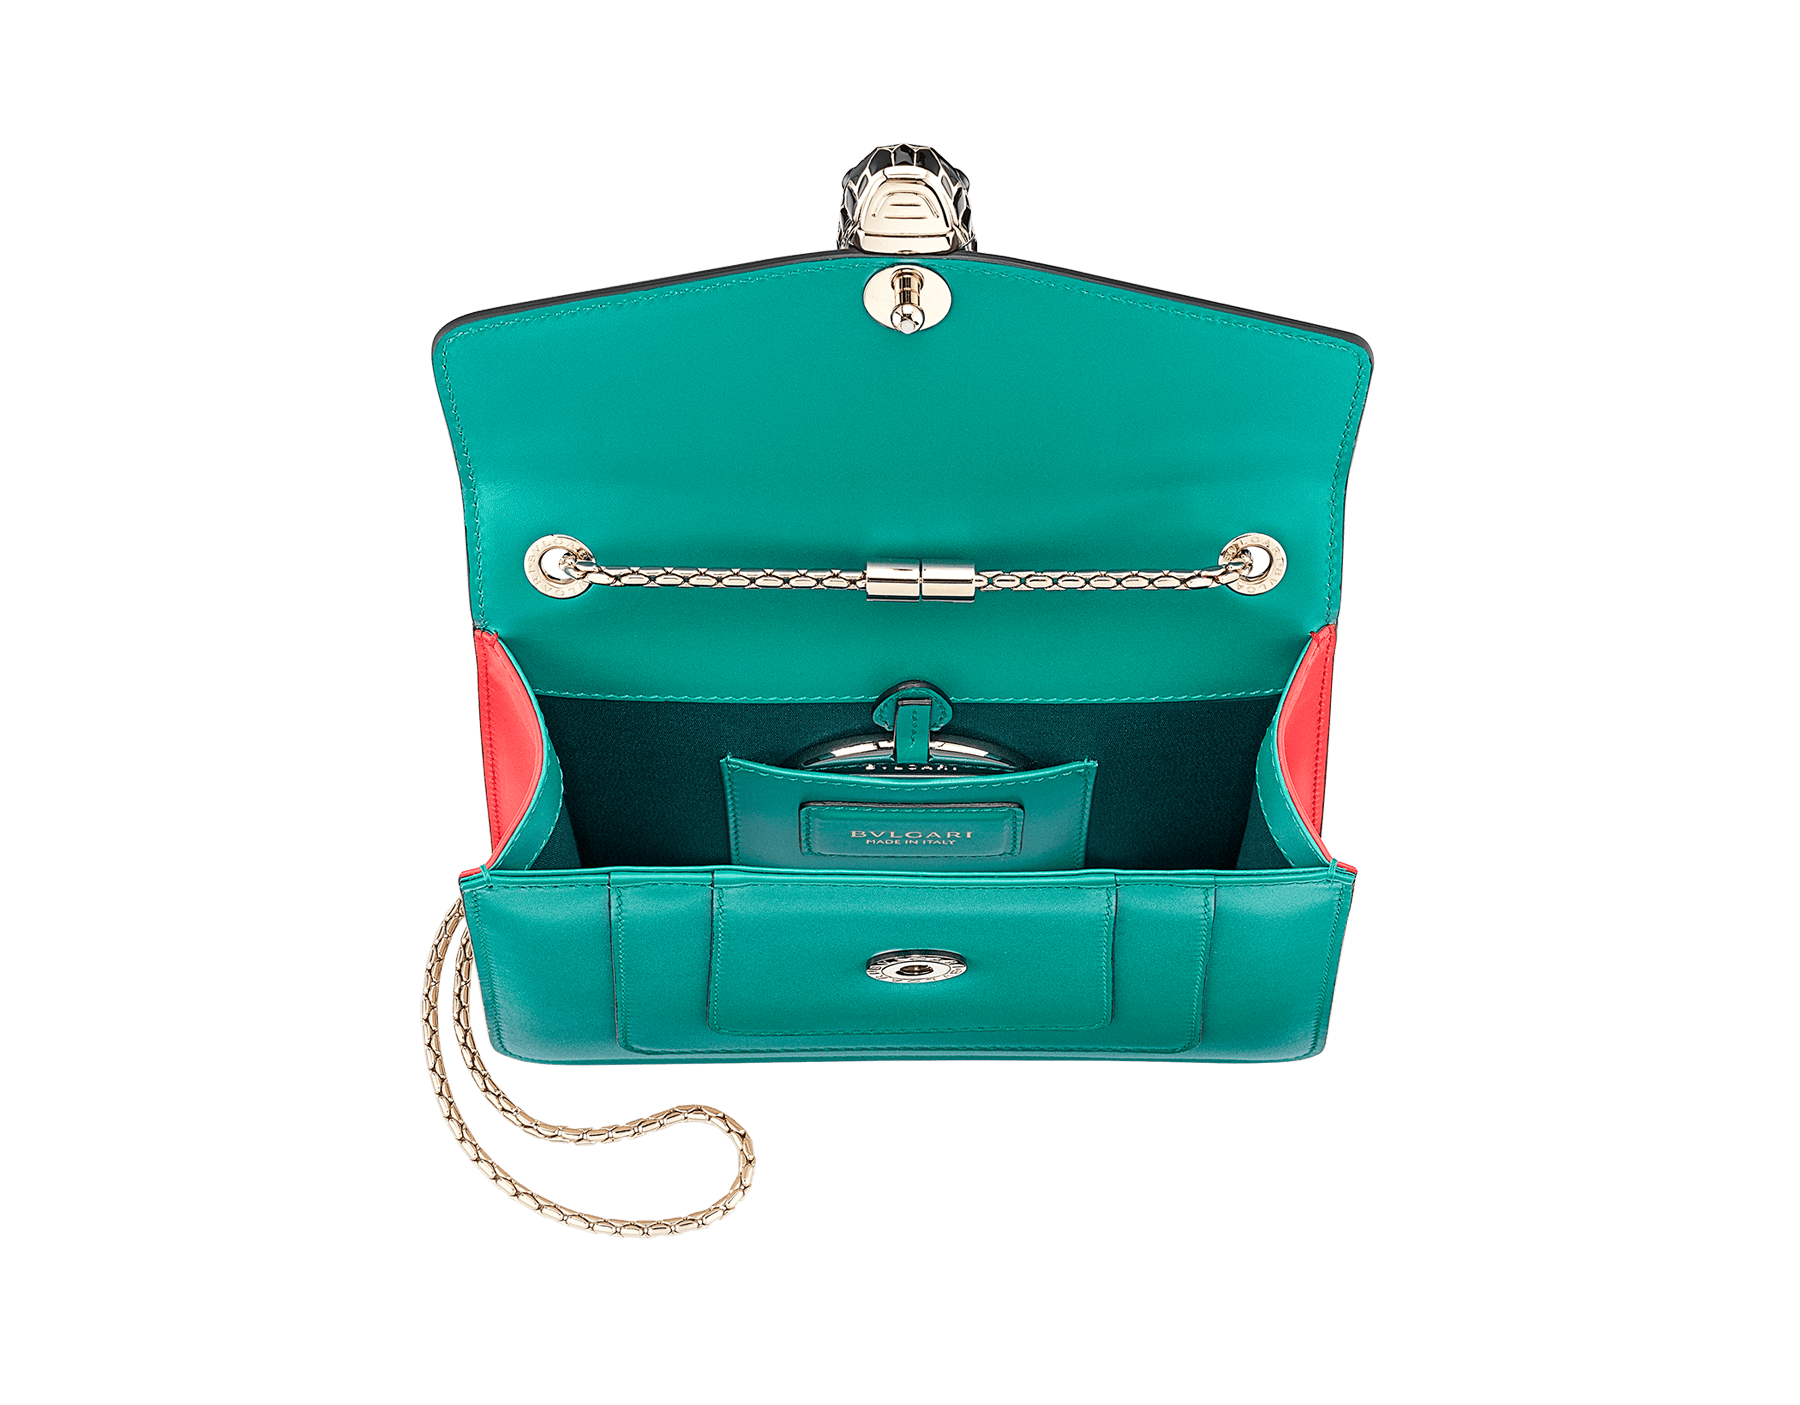 Serpenti Forever crossbody bag in tropical turquoise smooth calf leather body and sea star coral calf leather sides. Snakehead closure in light gold plated brass decorated with tropical turquoise and black enamel, and black onyx eyes. 287958 image 4